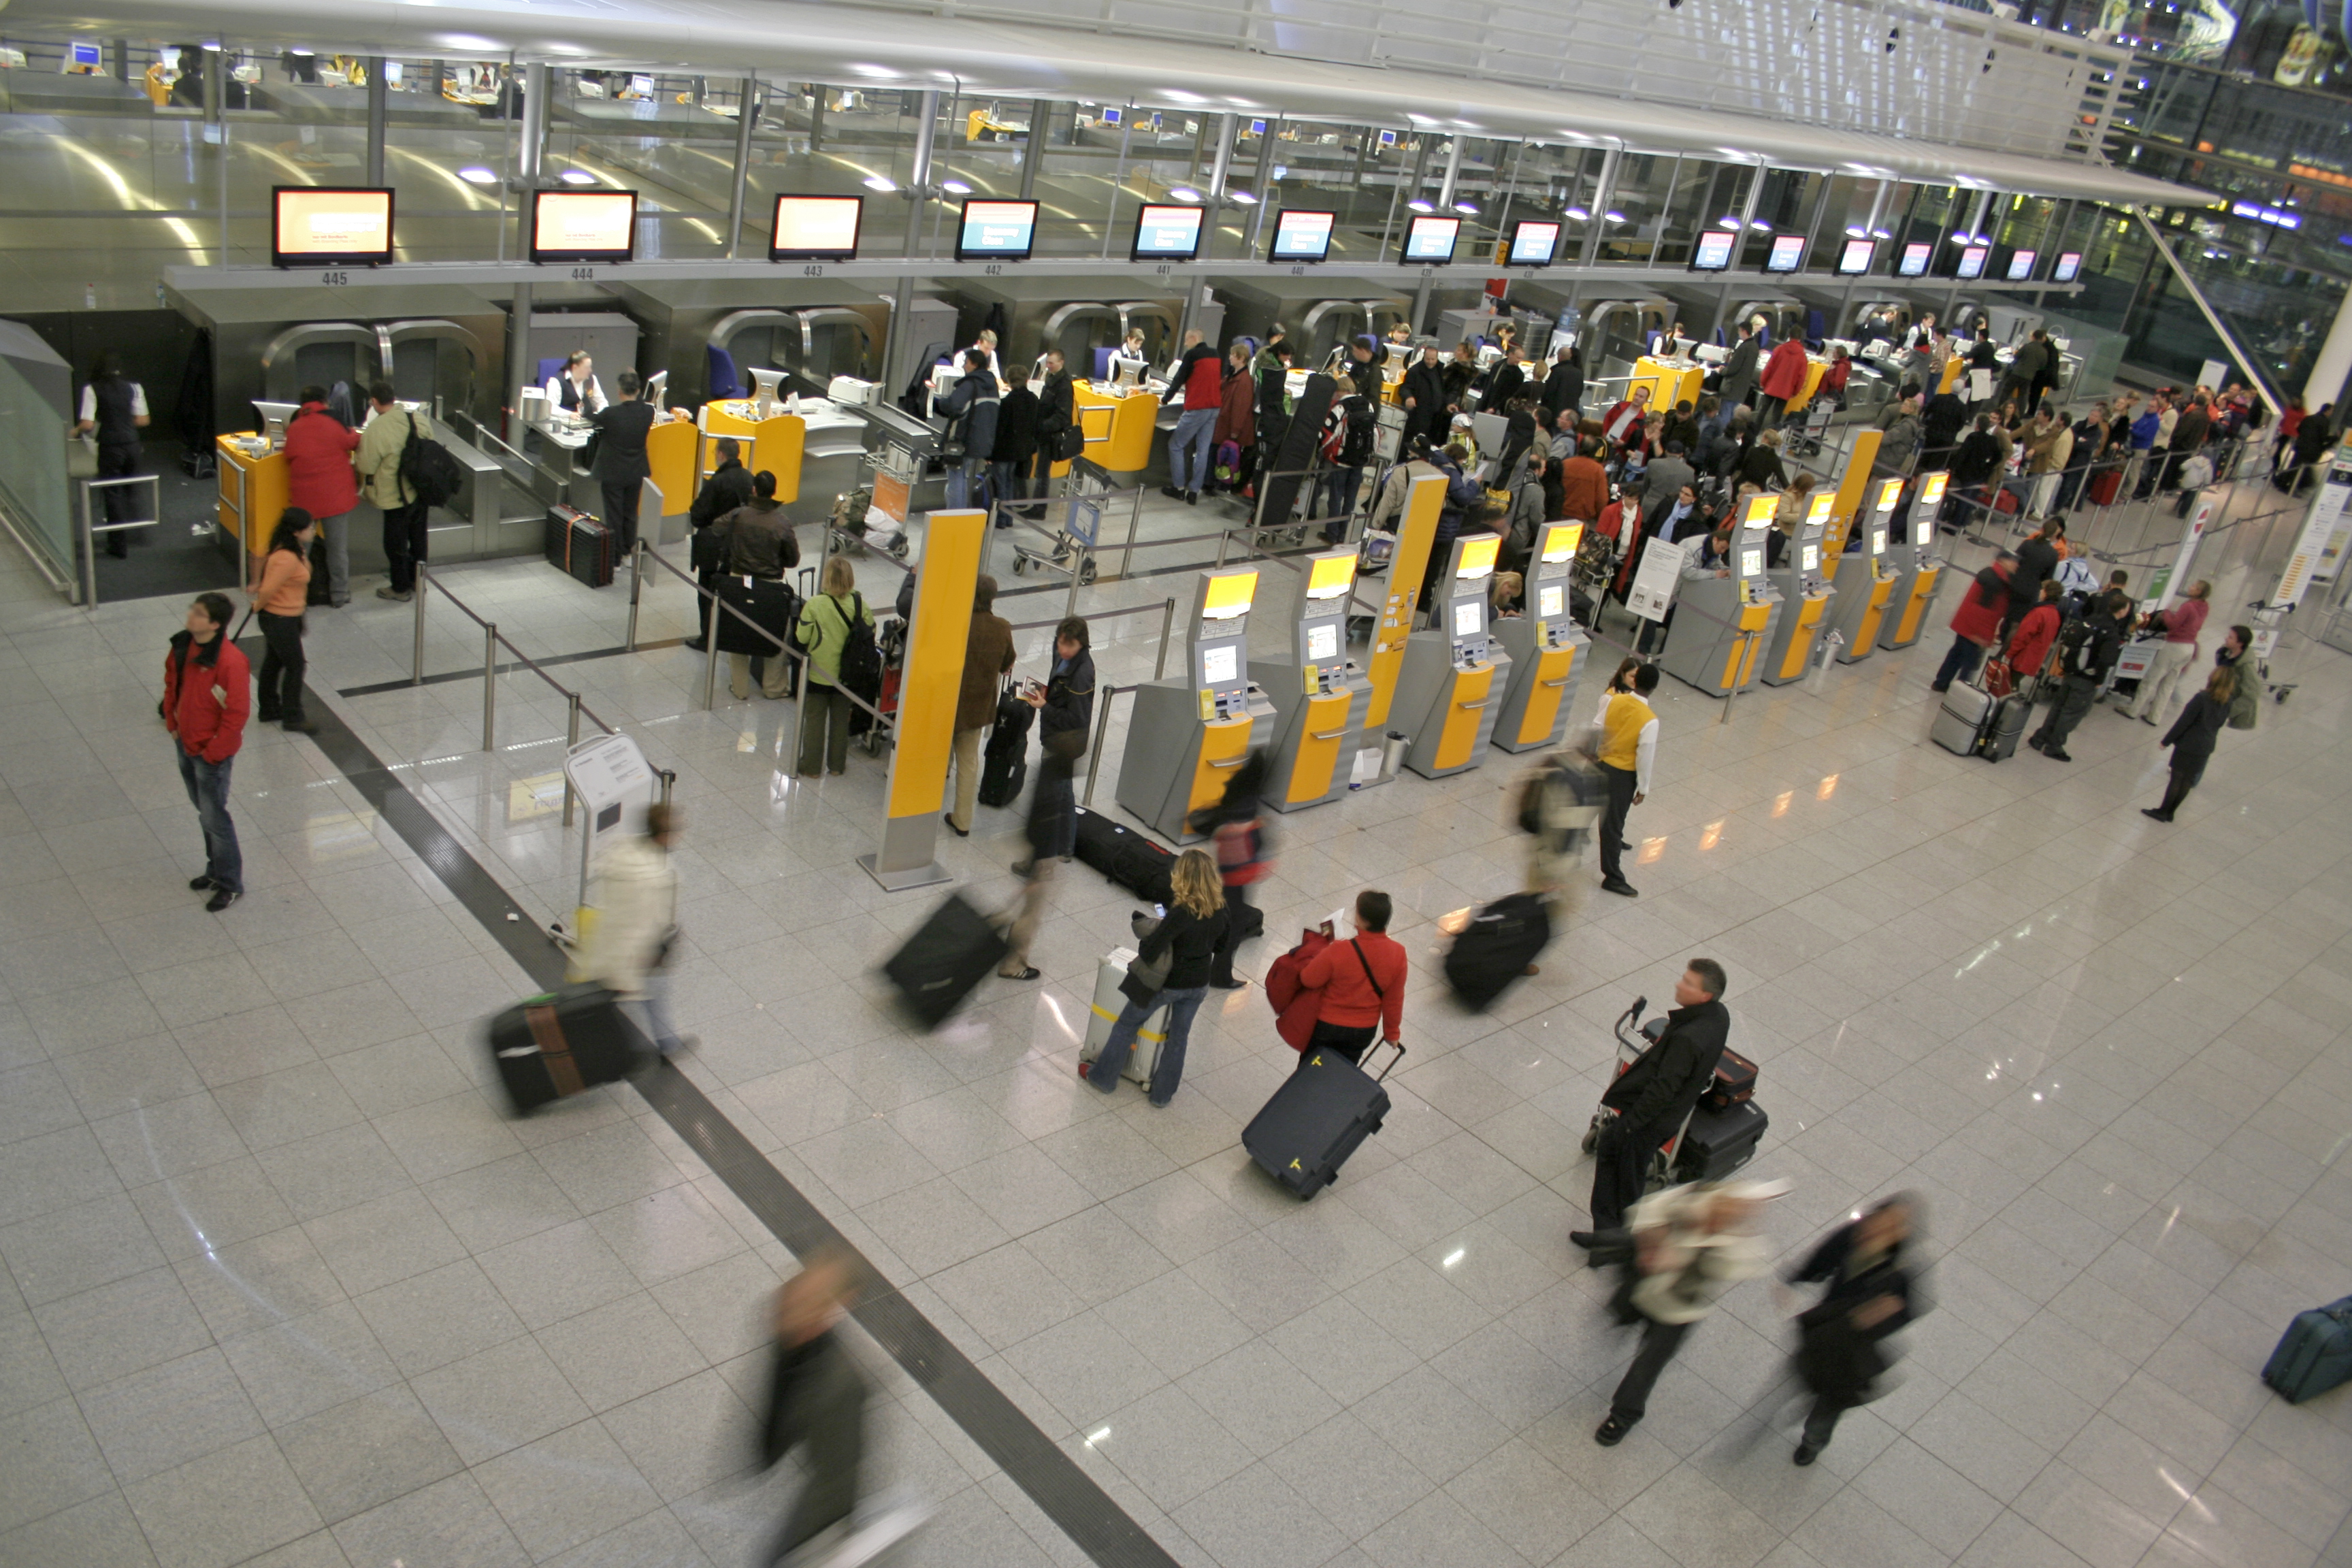 Are airports considered suppliers to airlines?